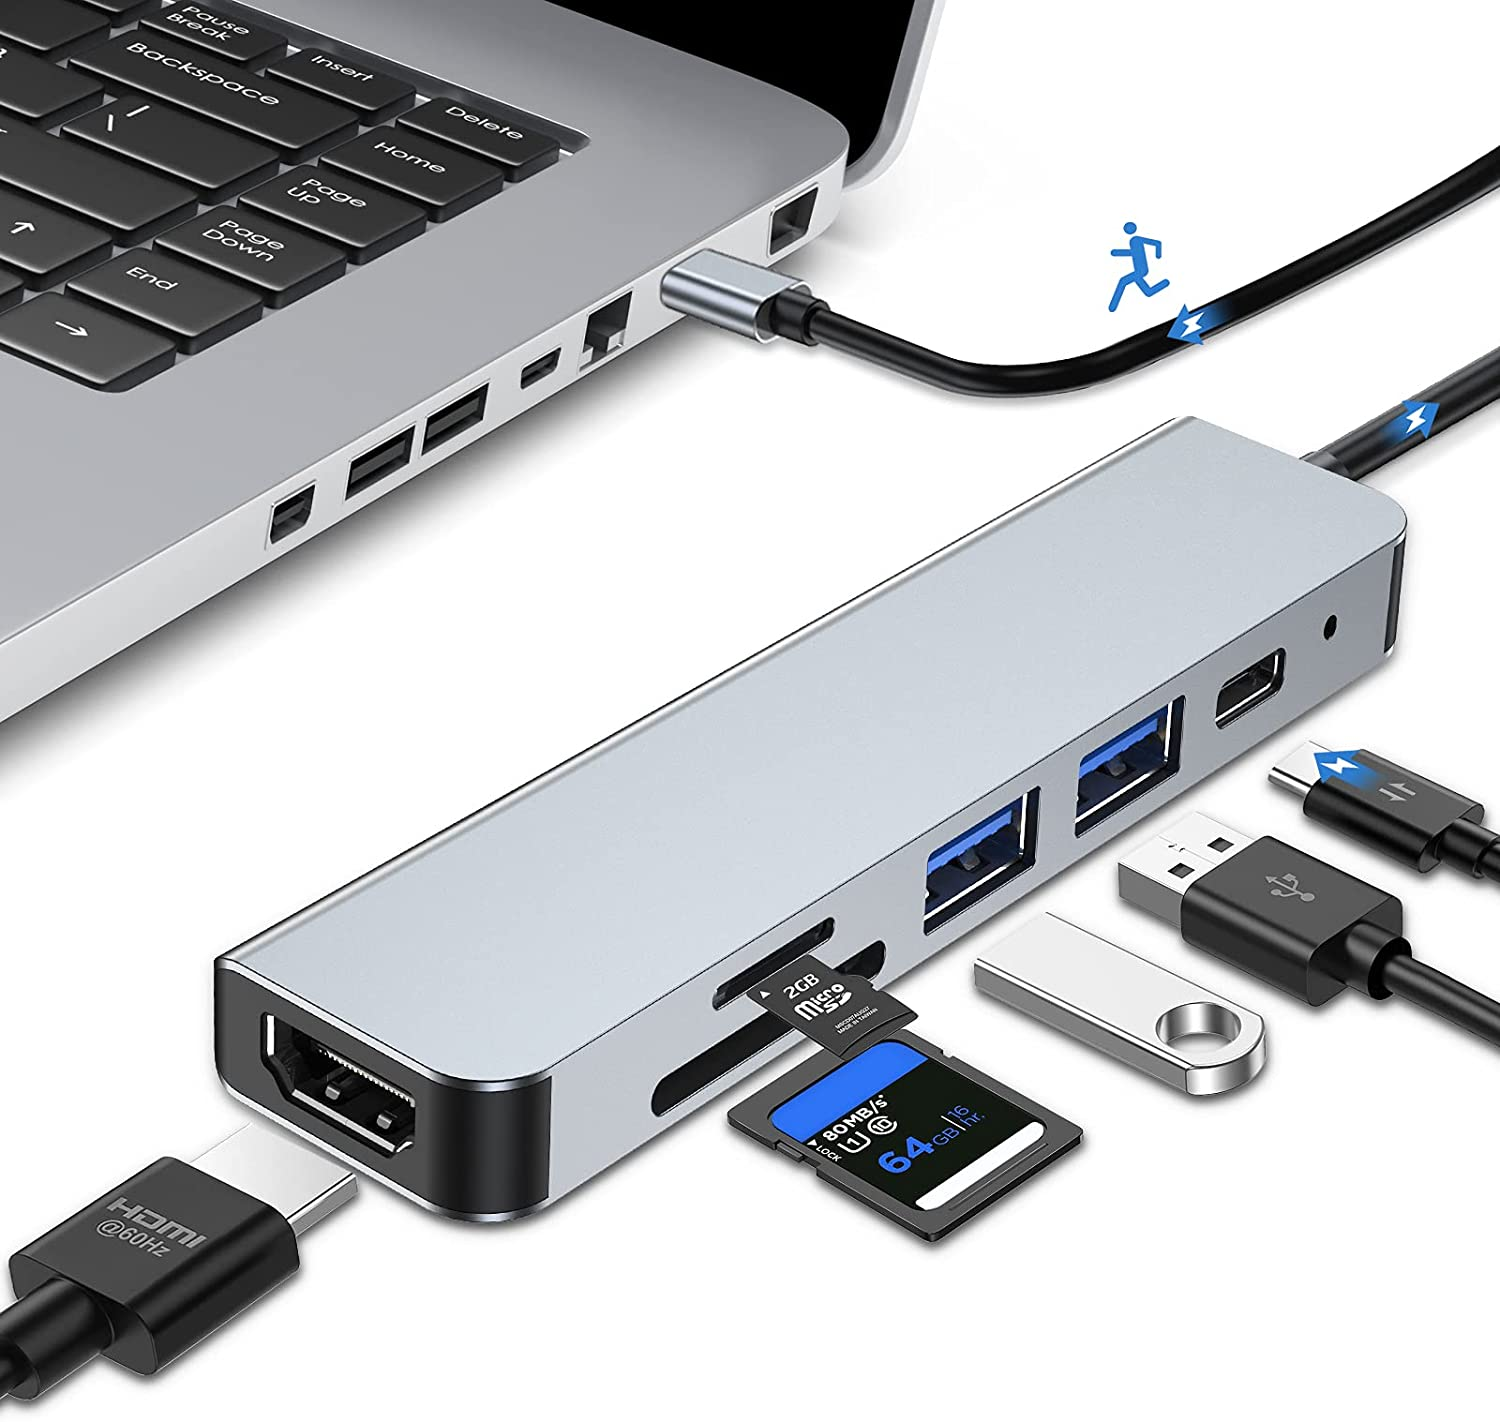 USB Hub HDMI Multiport Adapter, 6 in 1 USB C Hub with Type-C PD Charging Port, 2 USB Ports, SD/TF Card Reader, 4K HDMI, Aluminum Macbook Pro Adapter, USB Dongle Docking Station for Laptop, Mac Pro/Air